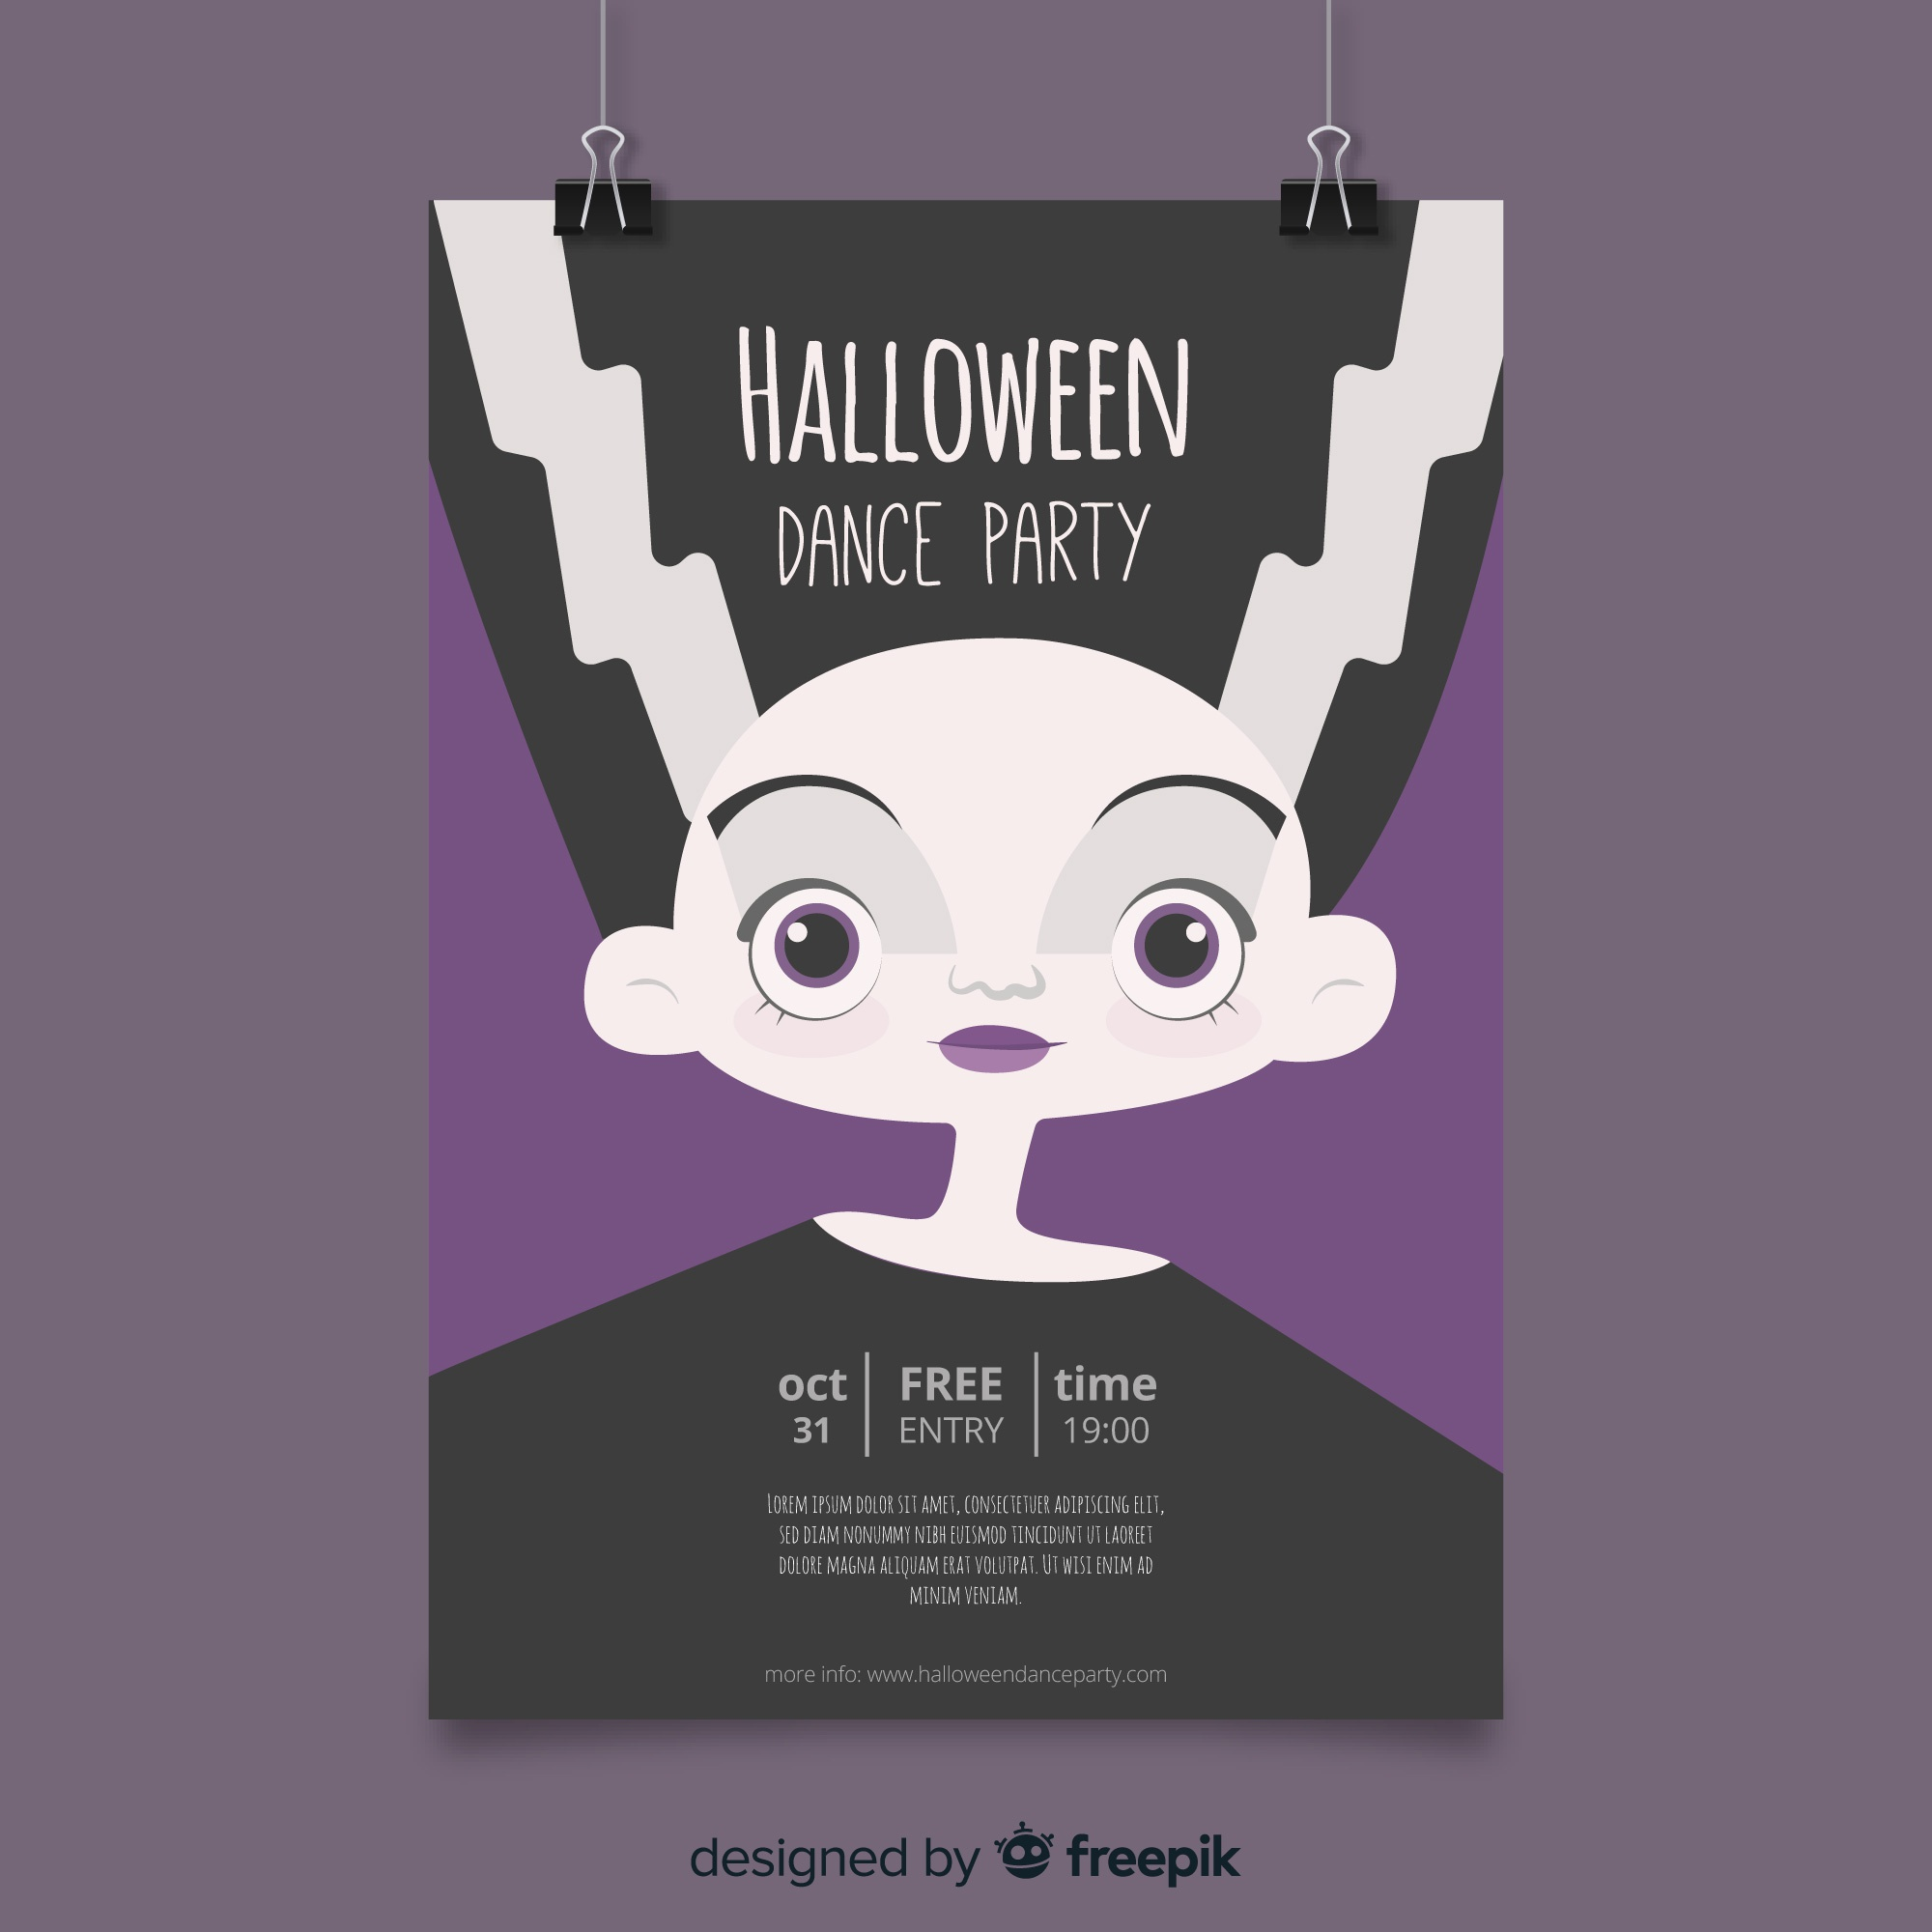 Lovely hand drawn halloween party poster